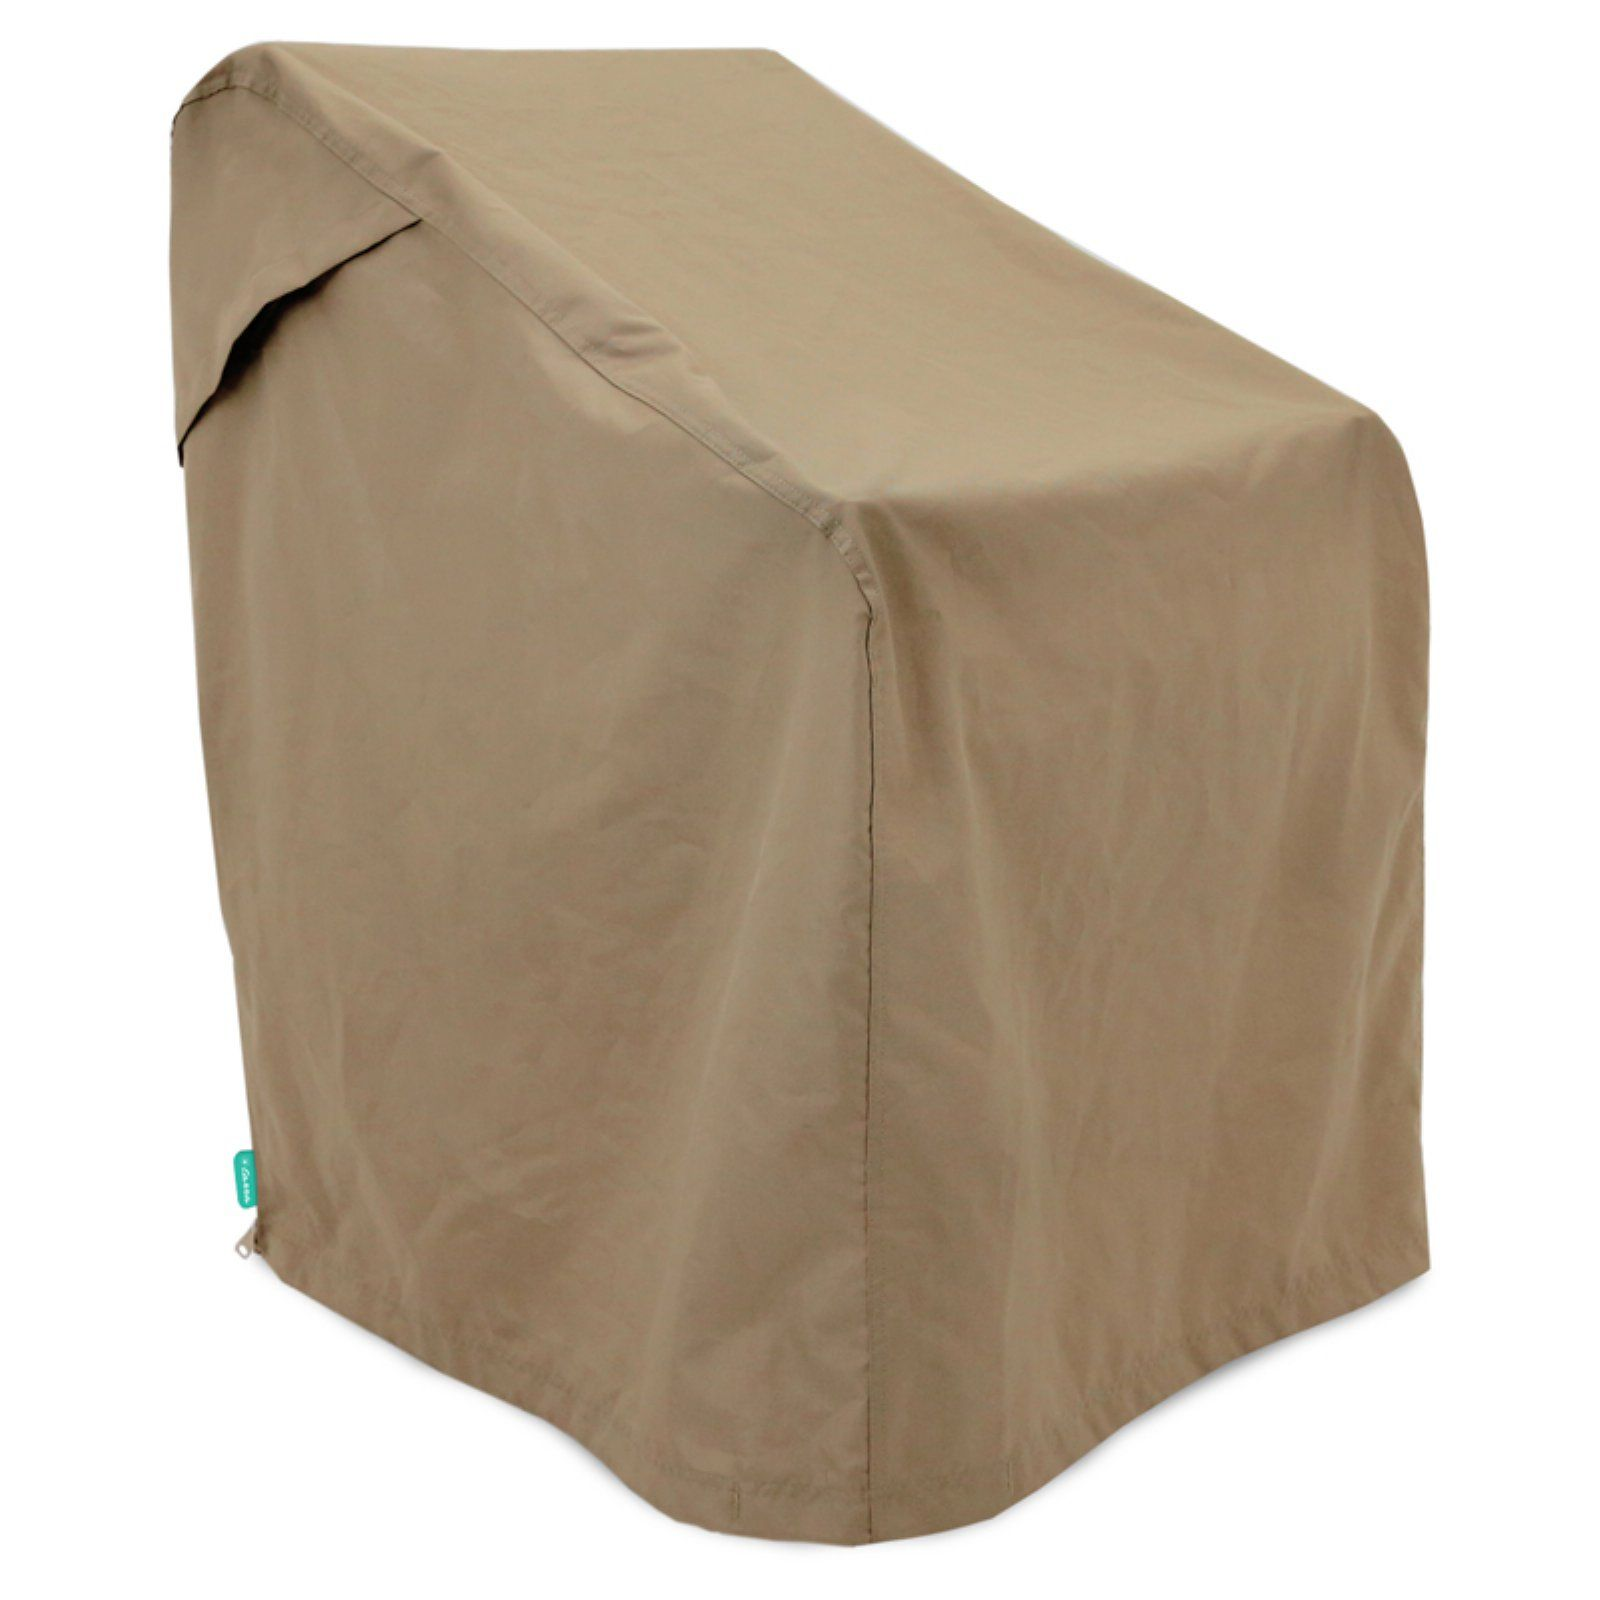 Tarra Home Universal Outdoor Ufccc404035pt Patio Modular Sectional Club Chair Cover Tan